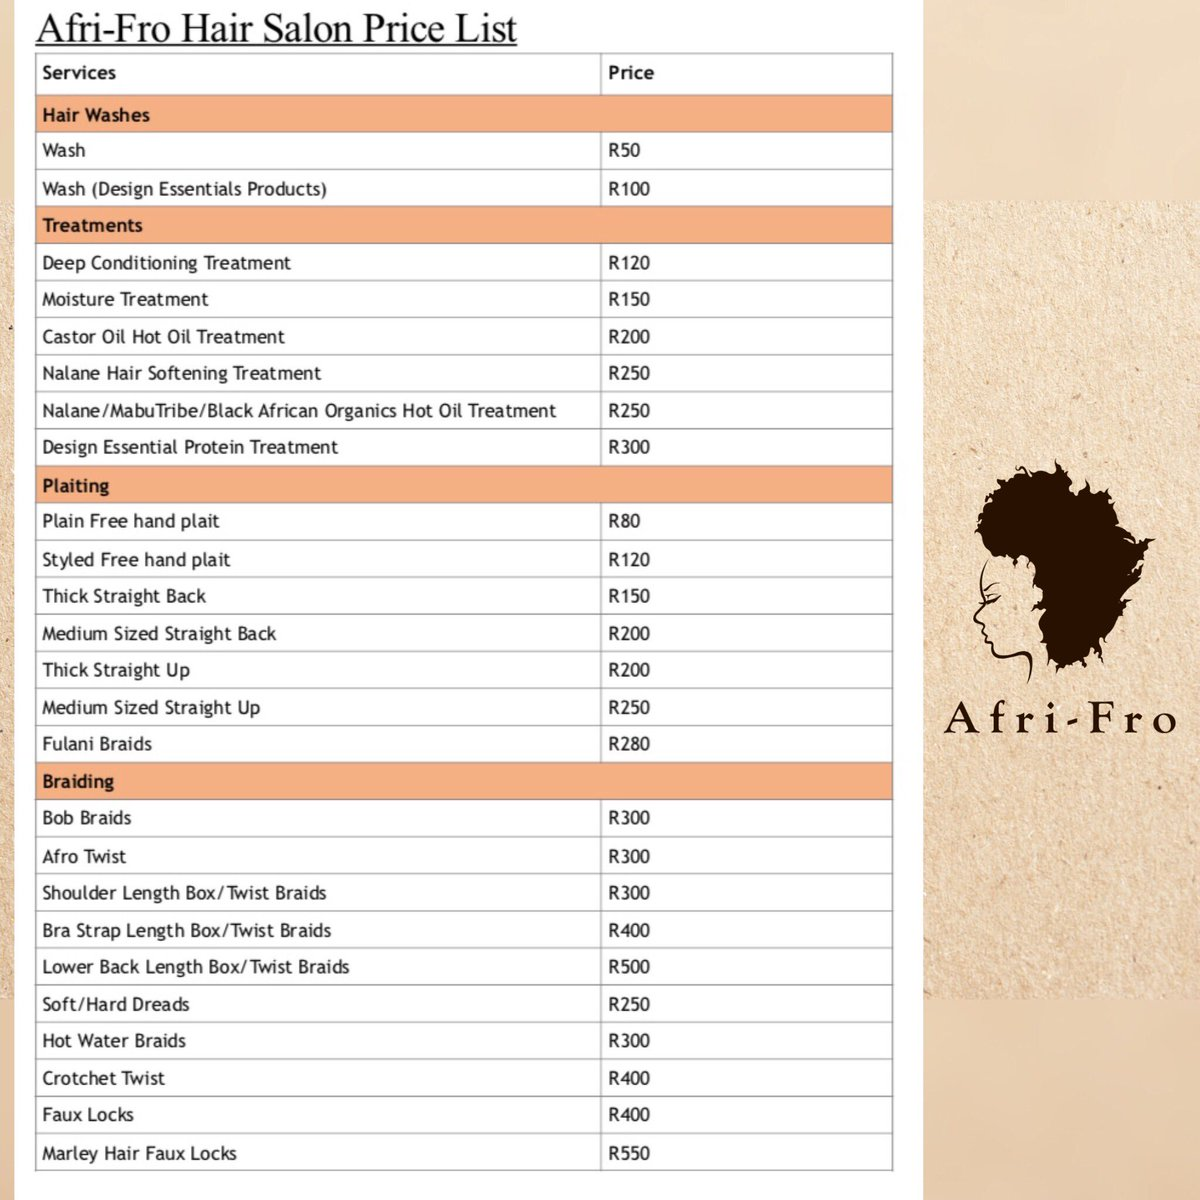 Afri Fro Hair Salon On Twitter Our 2018 Price List Note That Some Prices Have Been Reviewed And Adjusted Forallyournaturalhairneeds